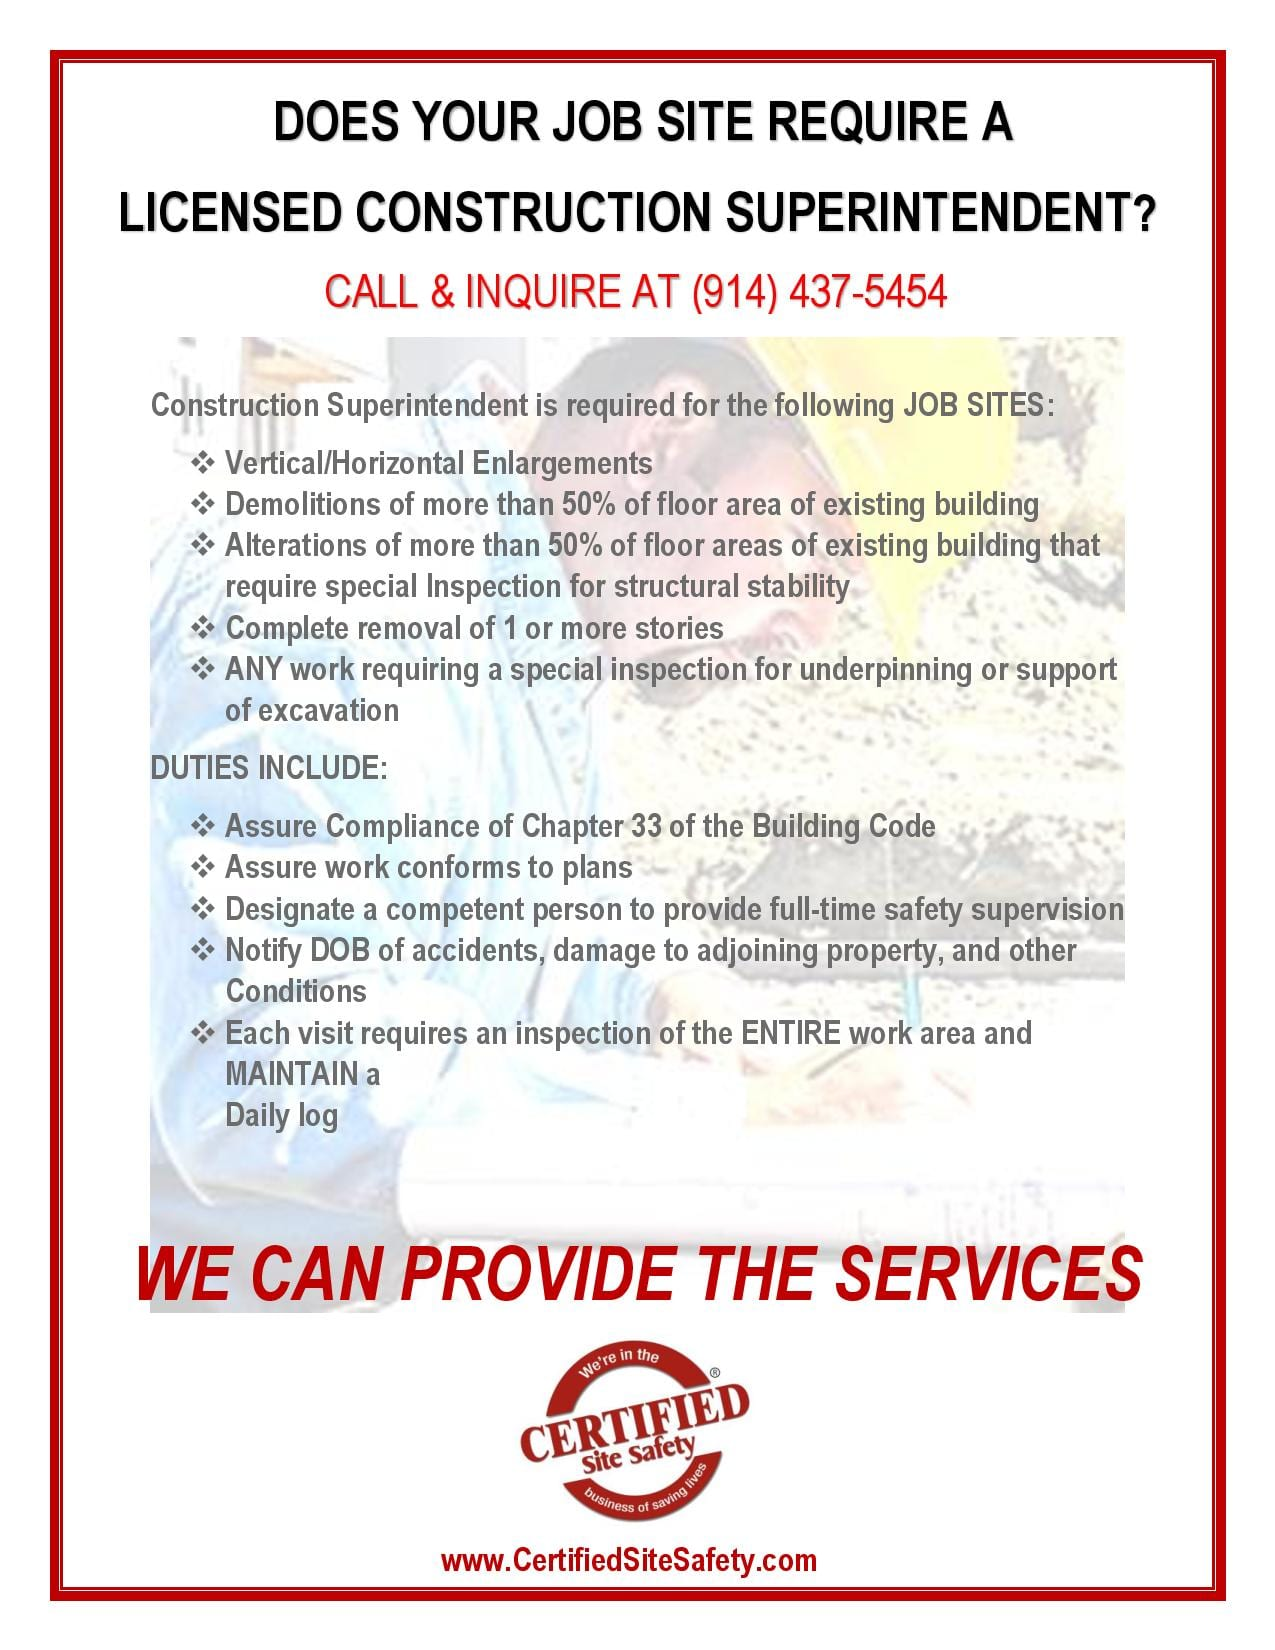 Does Your Job Site Require A Licensed Construction Superintendent